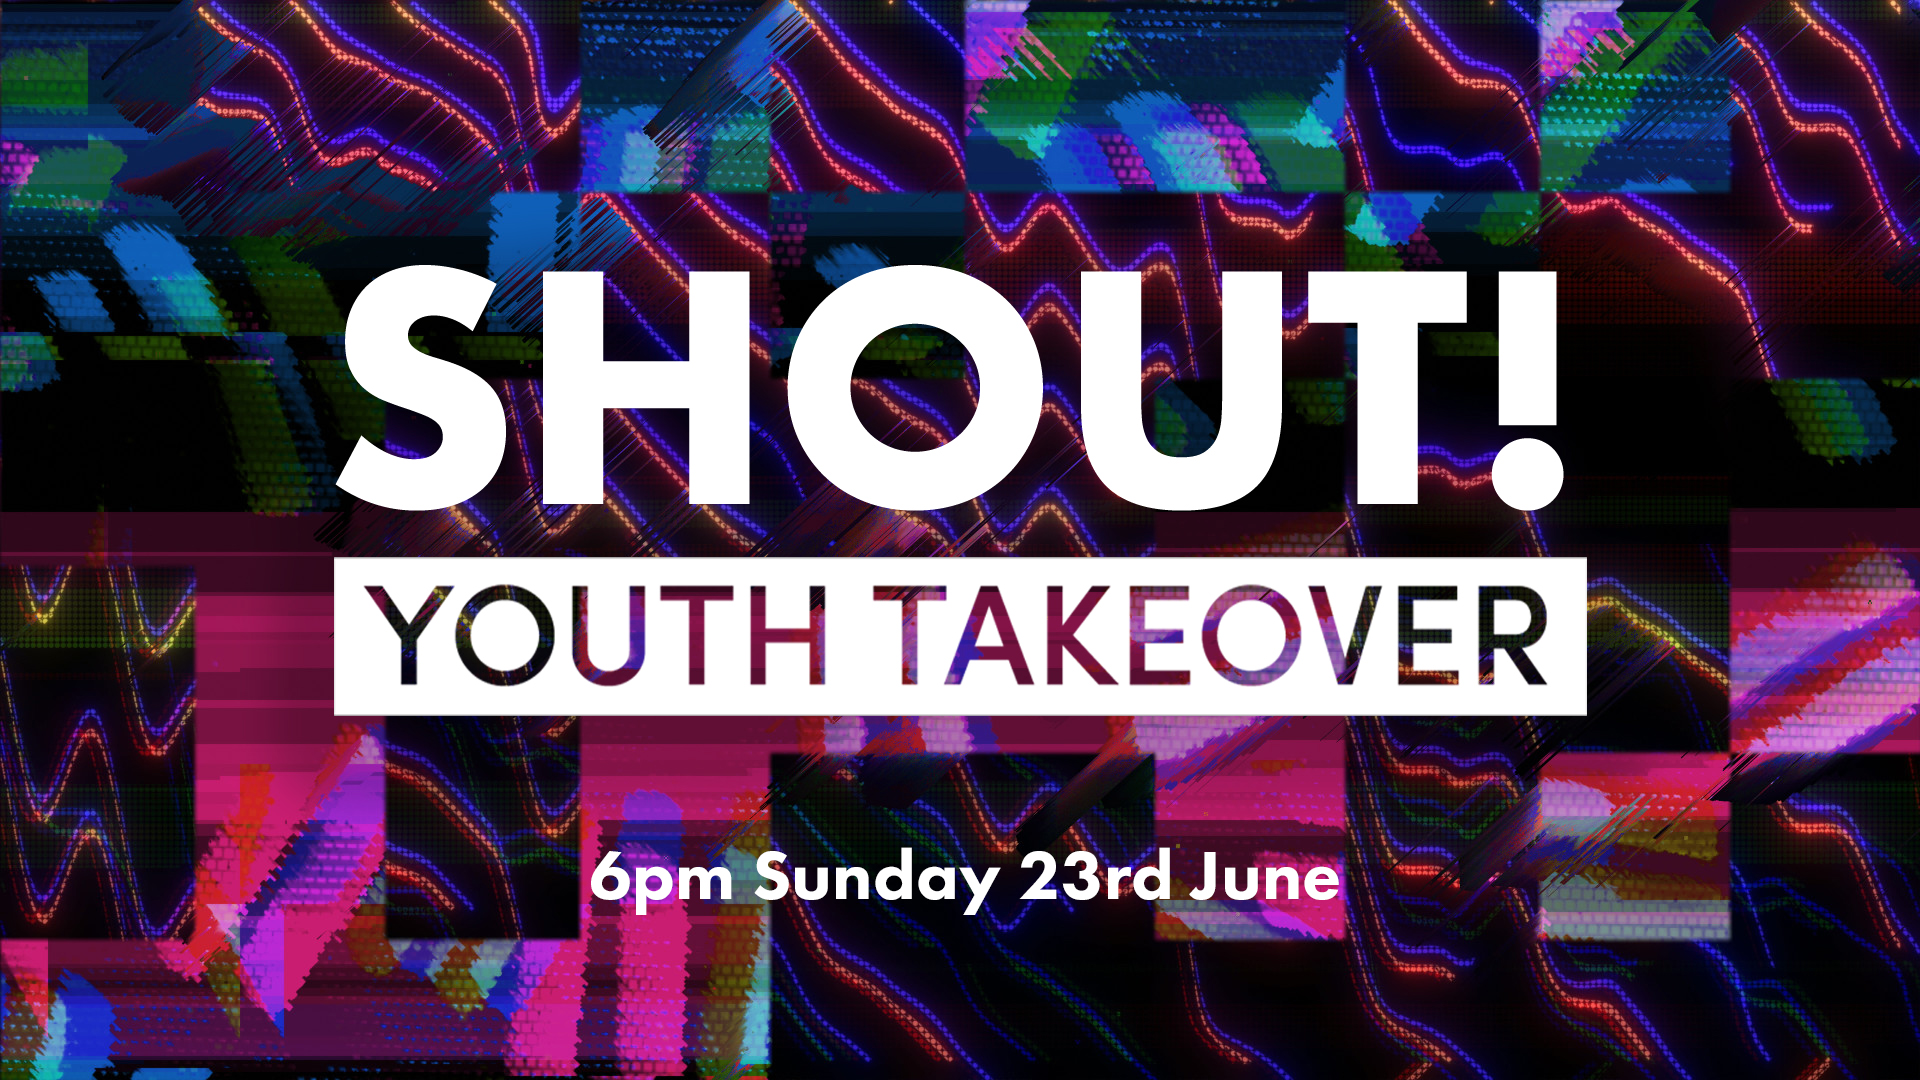 youth-takeover-t2-2019-1920x1080.jpg